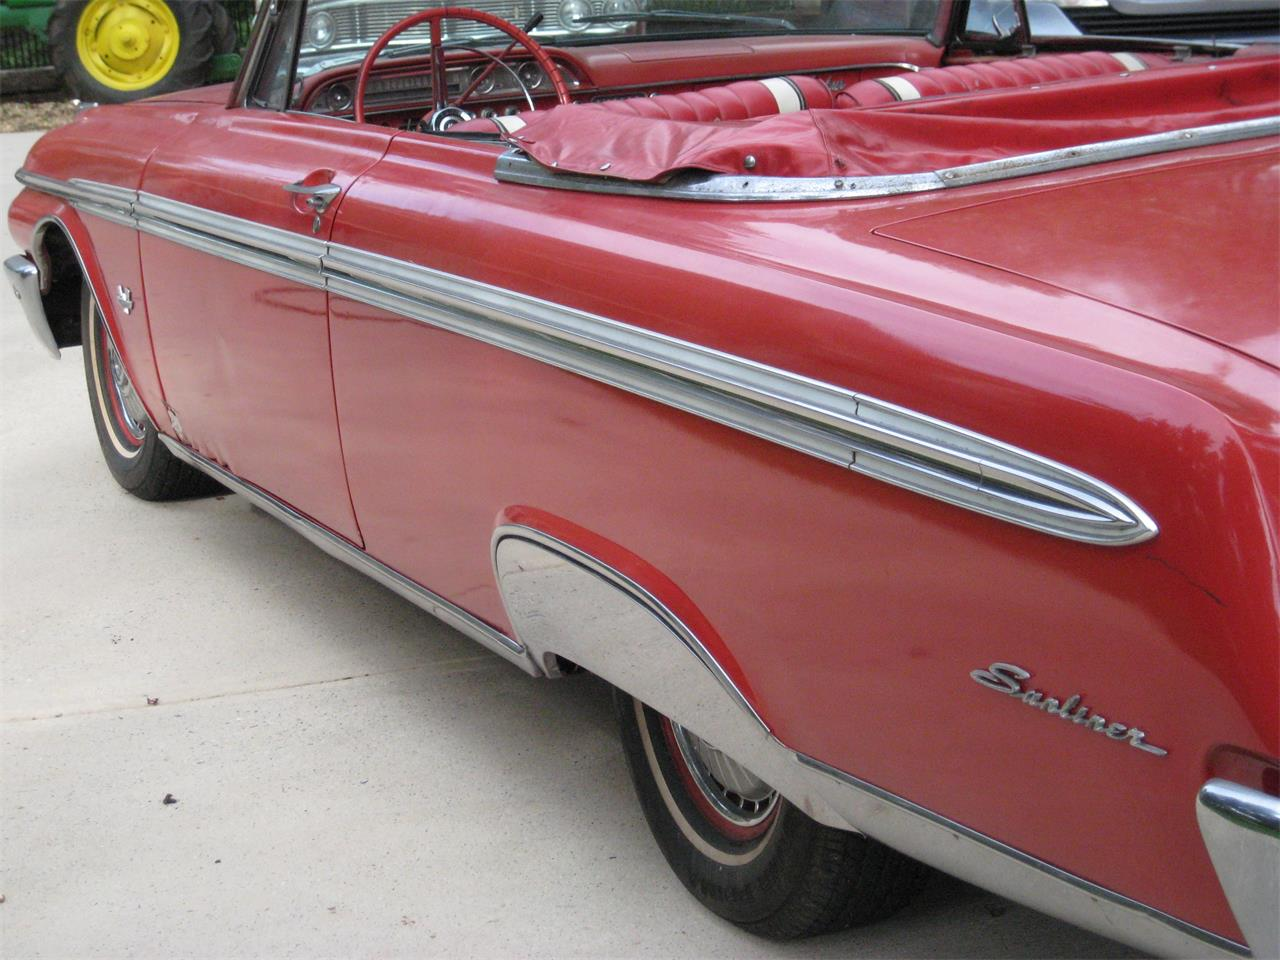 Large Picture of '62 Ford Sunliner located in Cumming Georgia - $13,500.00 Offered by a Private Seller - F46R